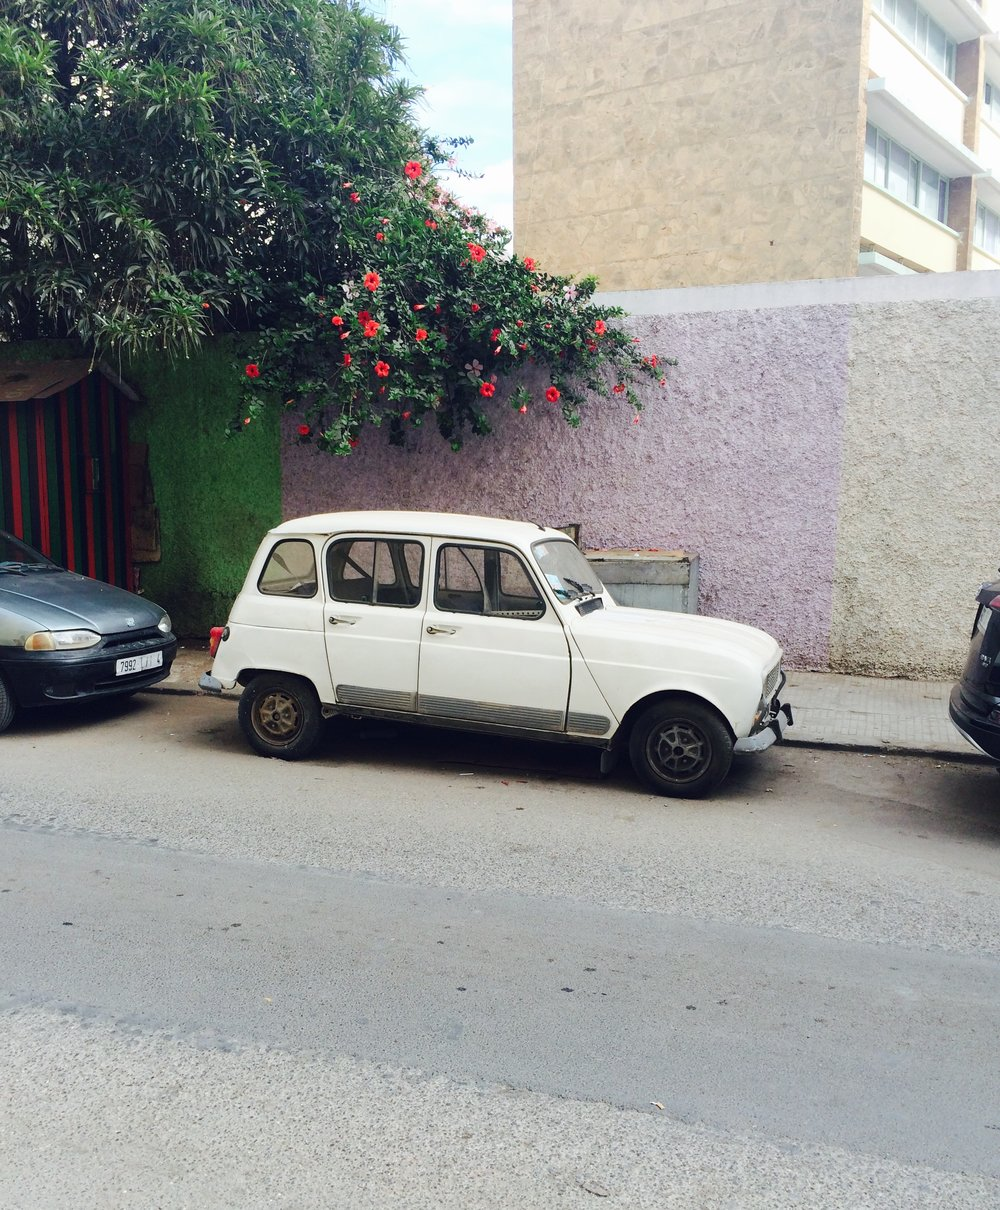 Cars of Rabat.